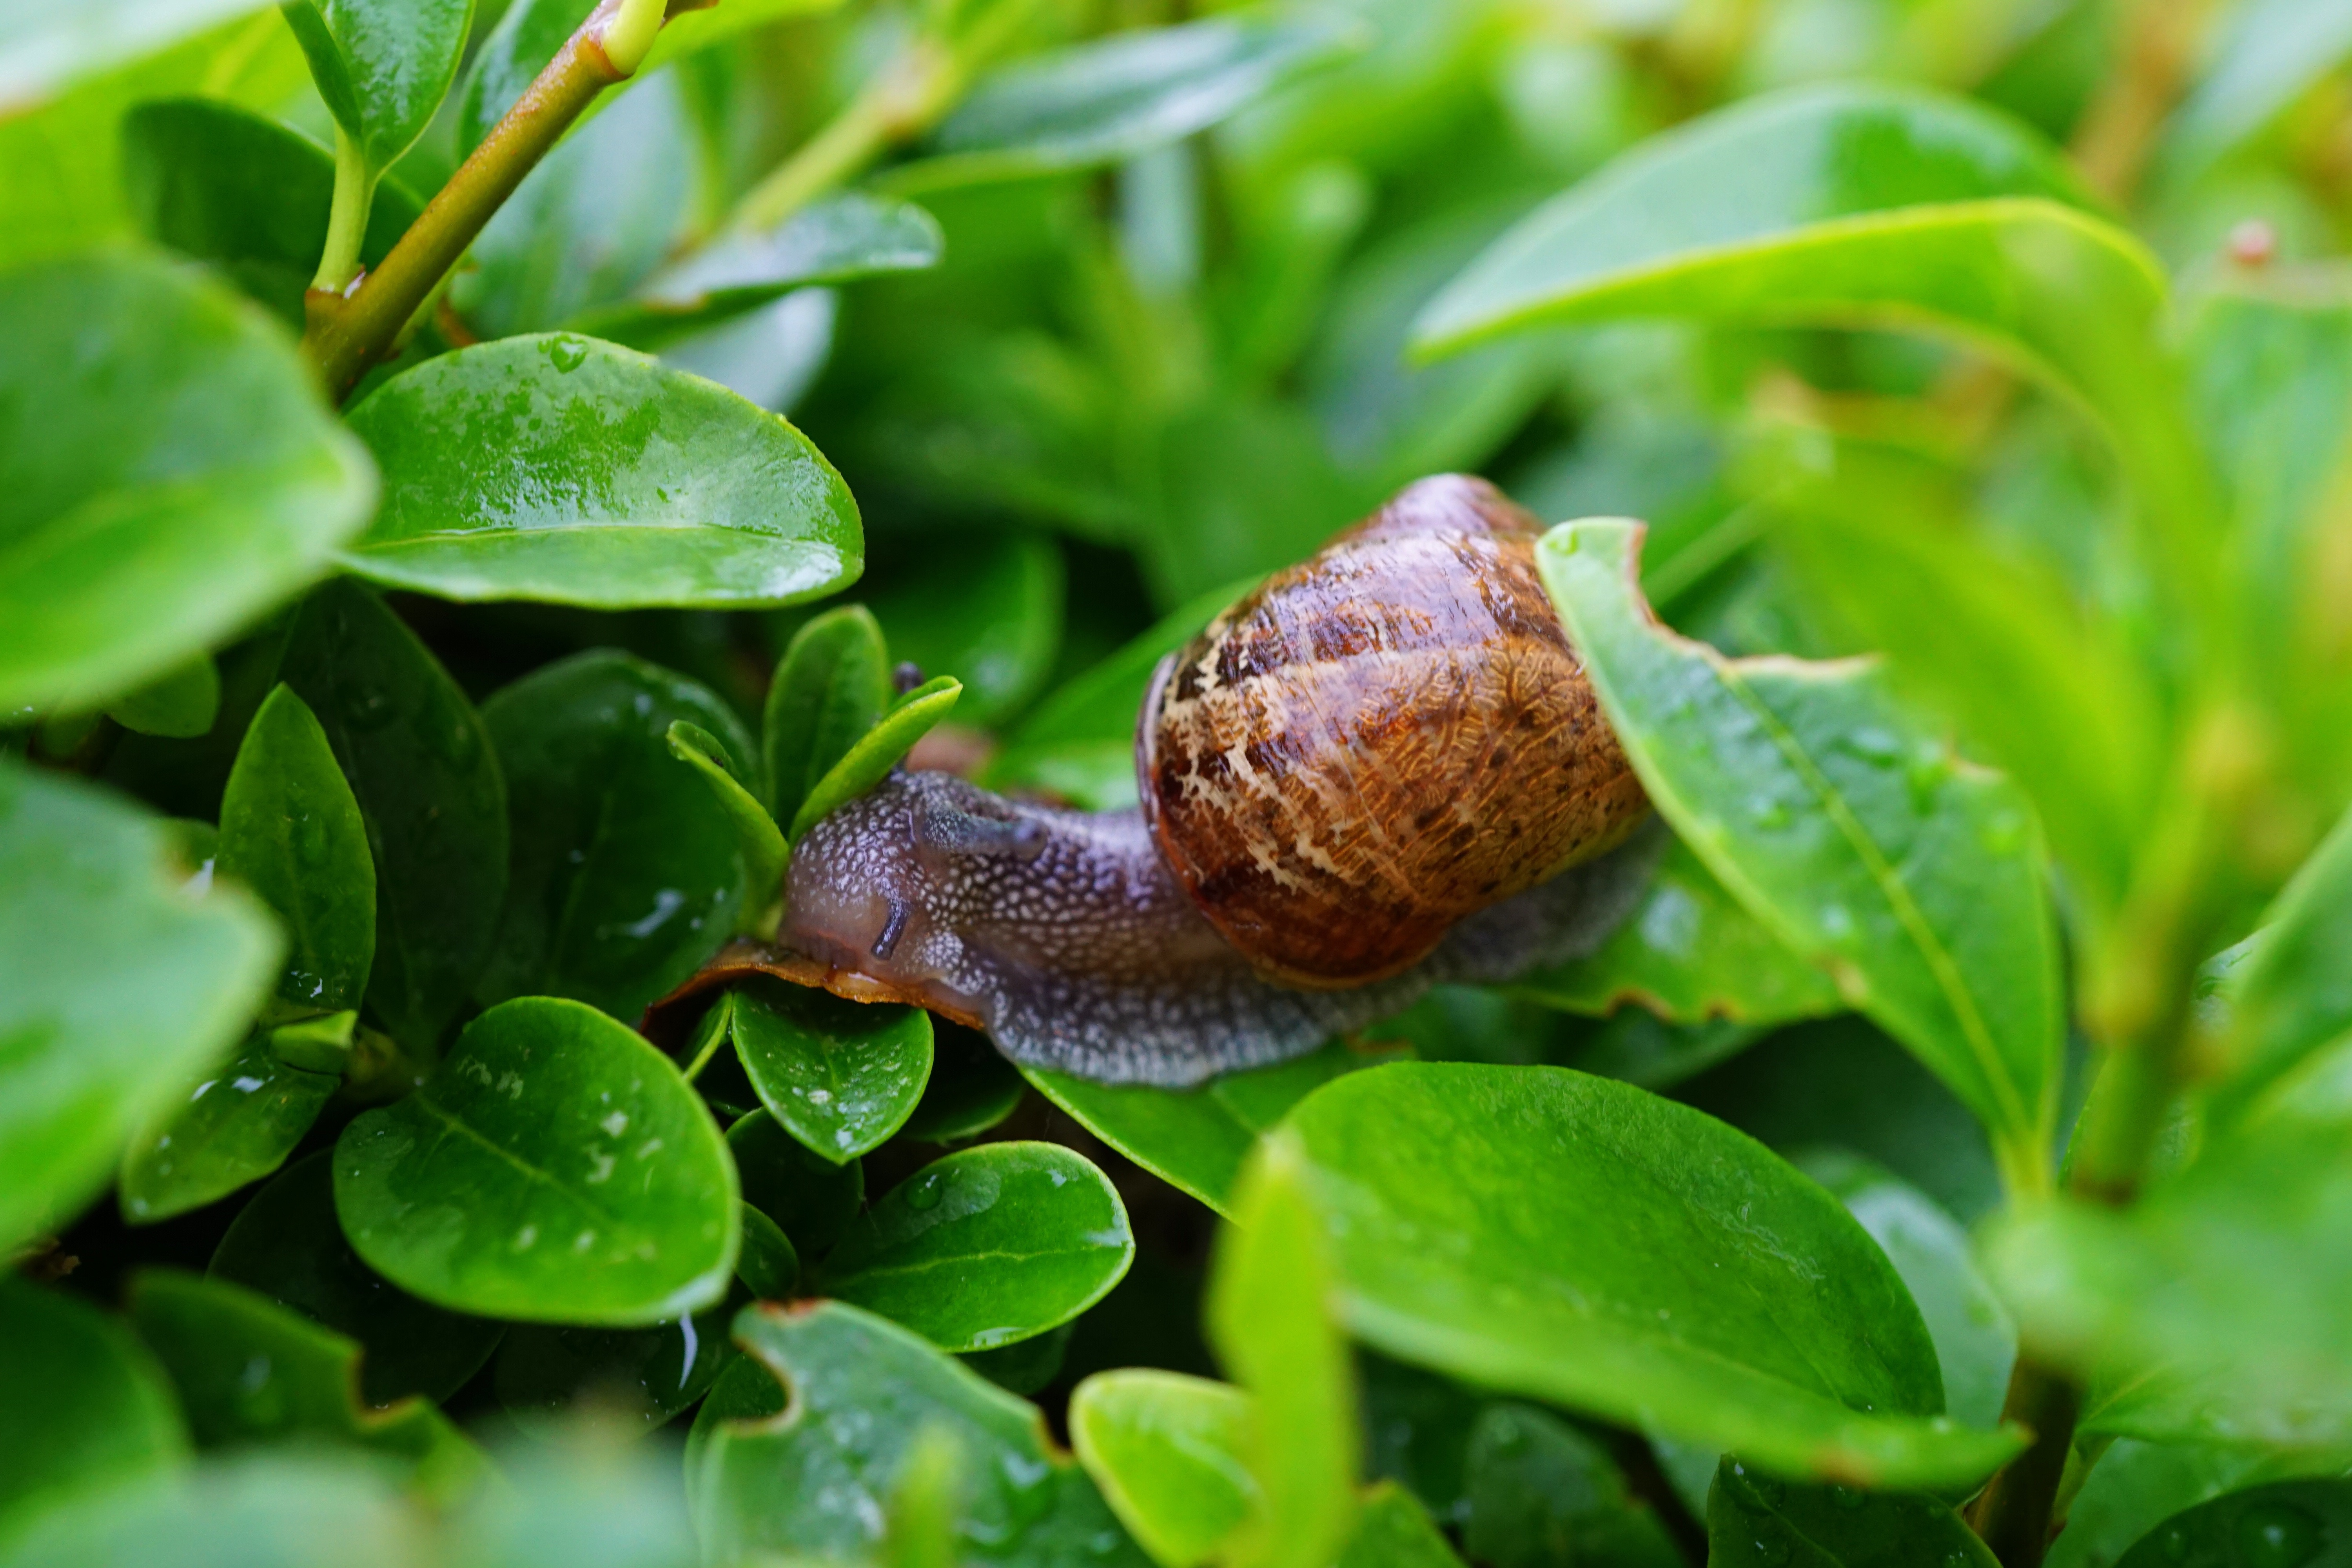 Snail on Green Leaf in Close Up Photography